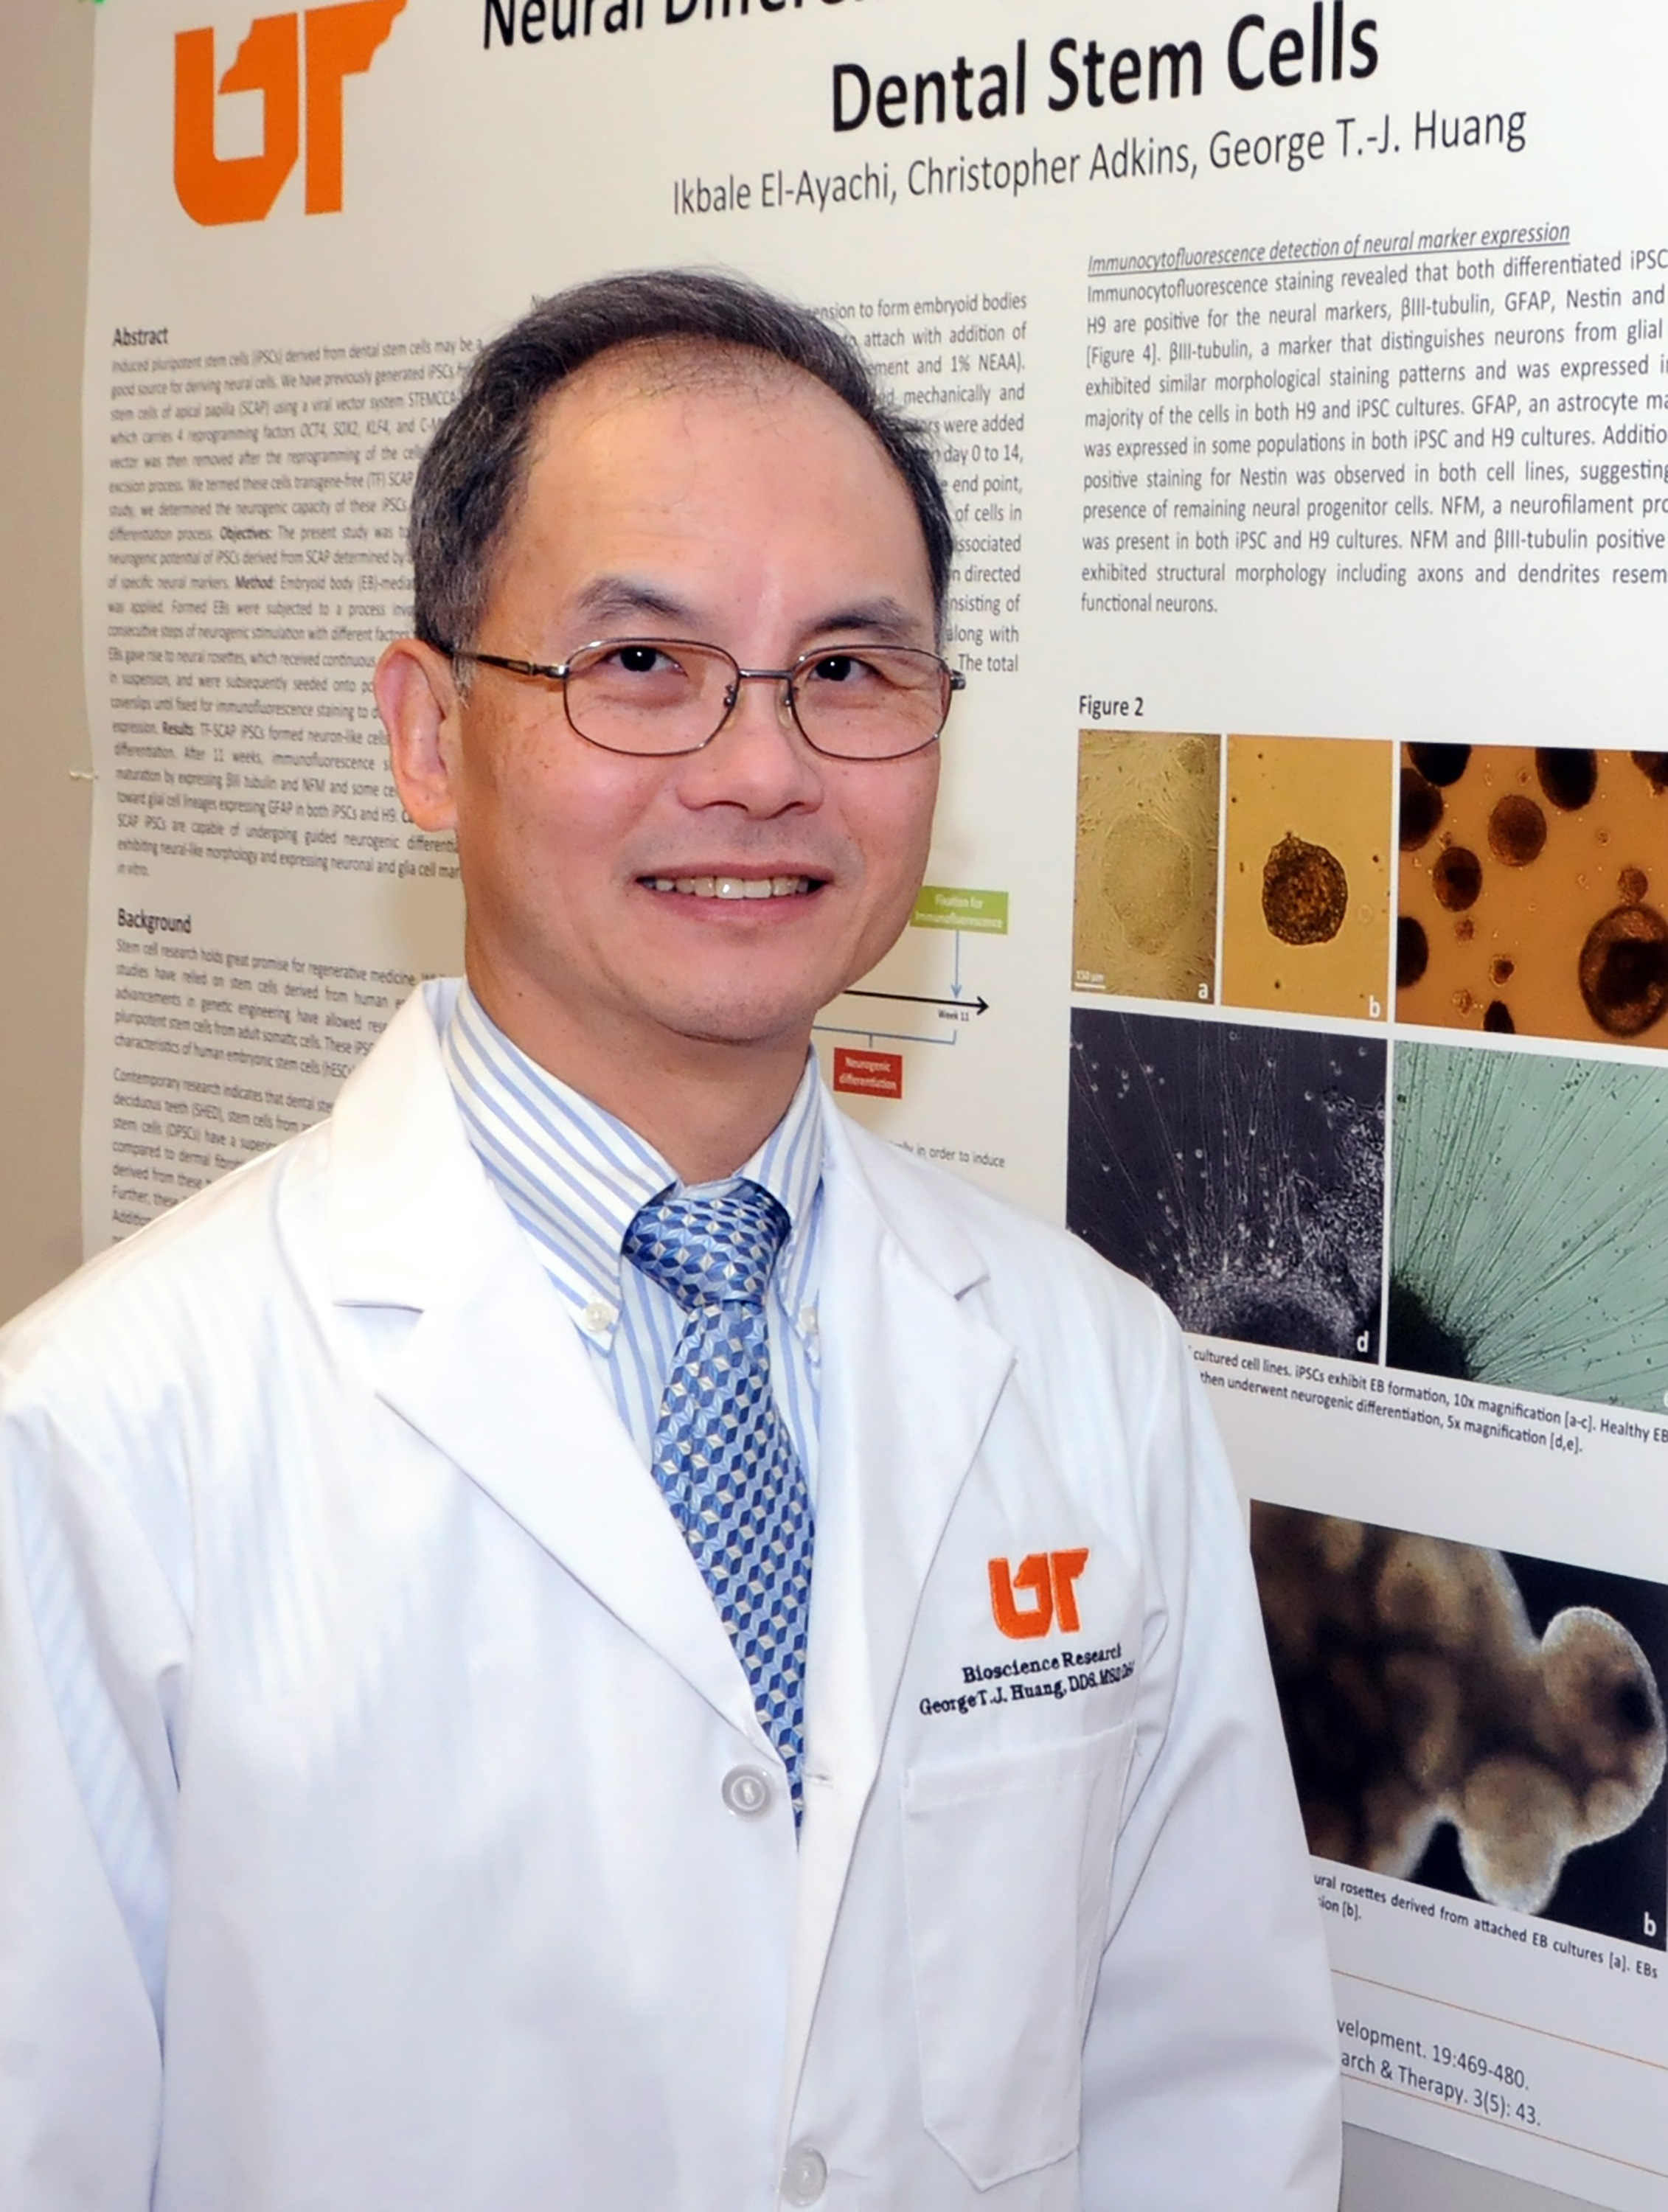 Dr. George Huang is the 2015 Recipient of the Distinguished Scientist Award in Pulp Biology and Regeneration from the International Association for Dental Research.